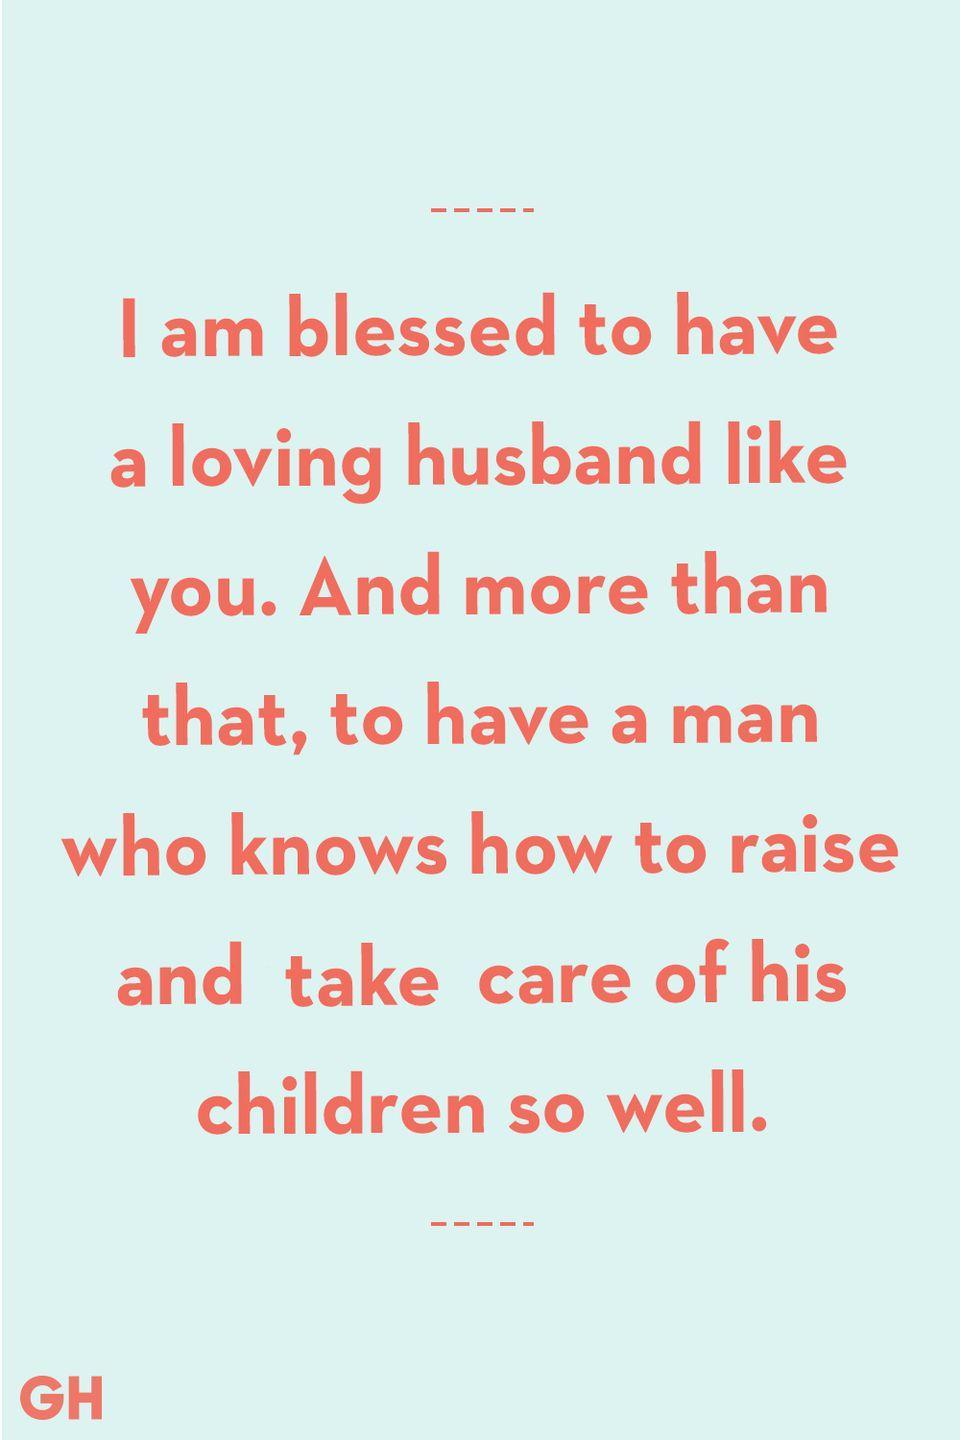 <p>I am blessed to have a loving husband like you. And more than that, to have a man who knows how to raise and takes care of his children so well.</p>